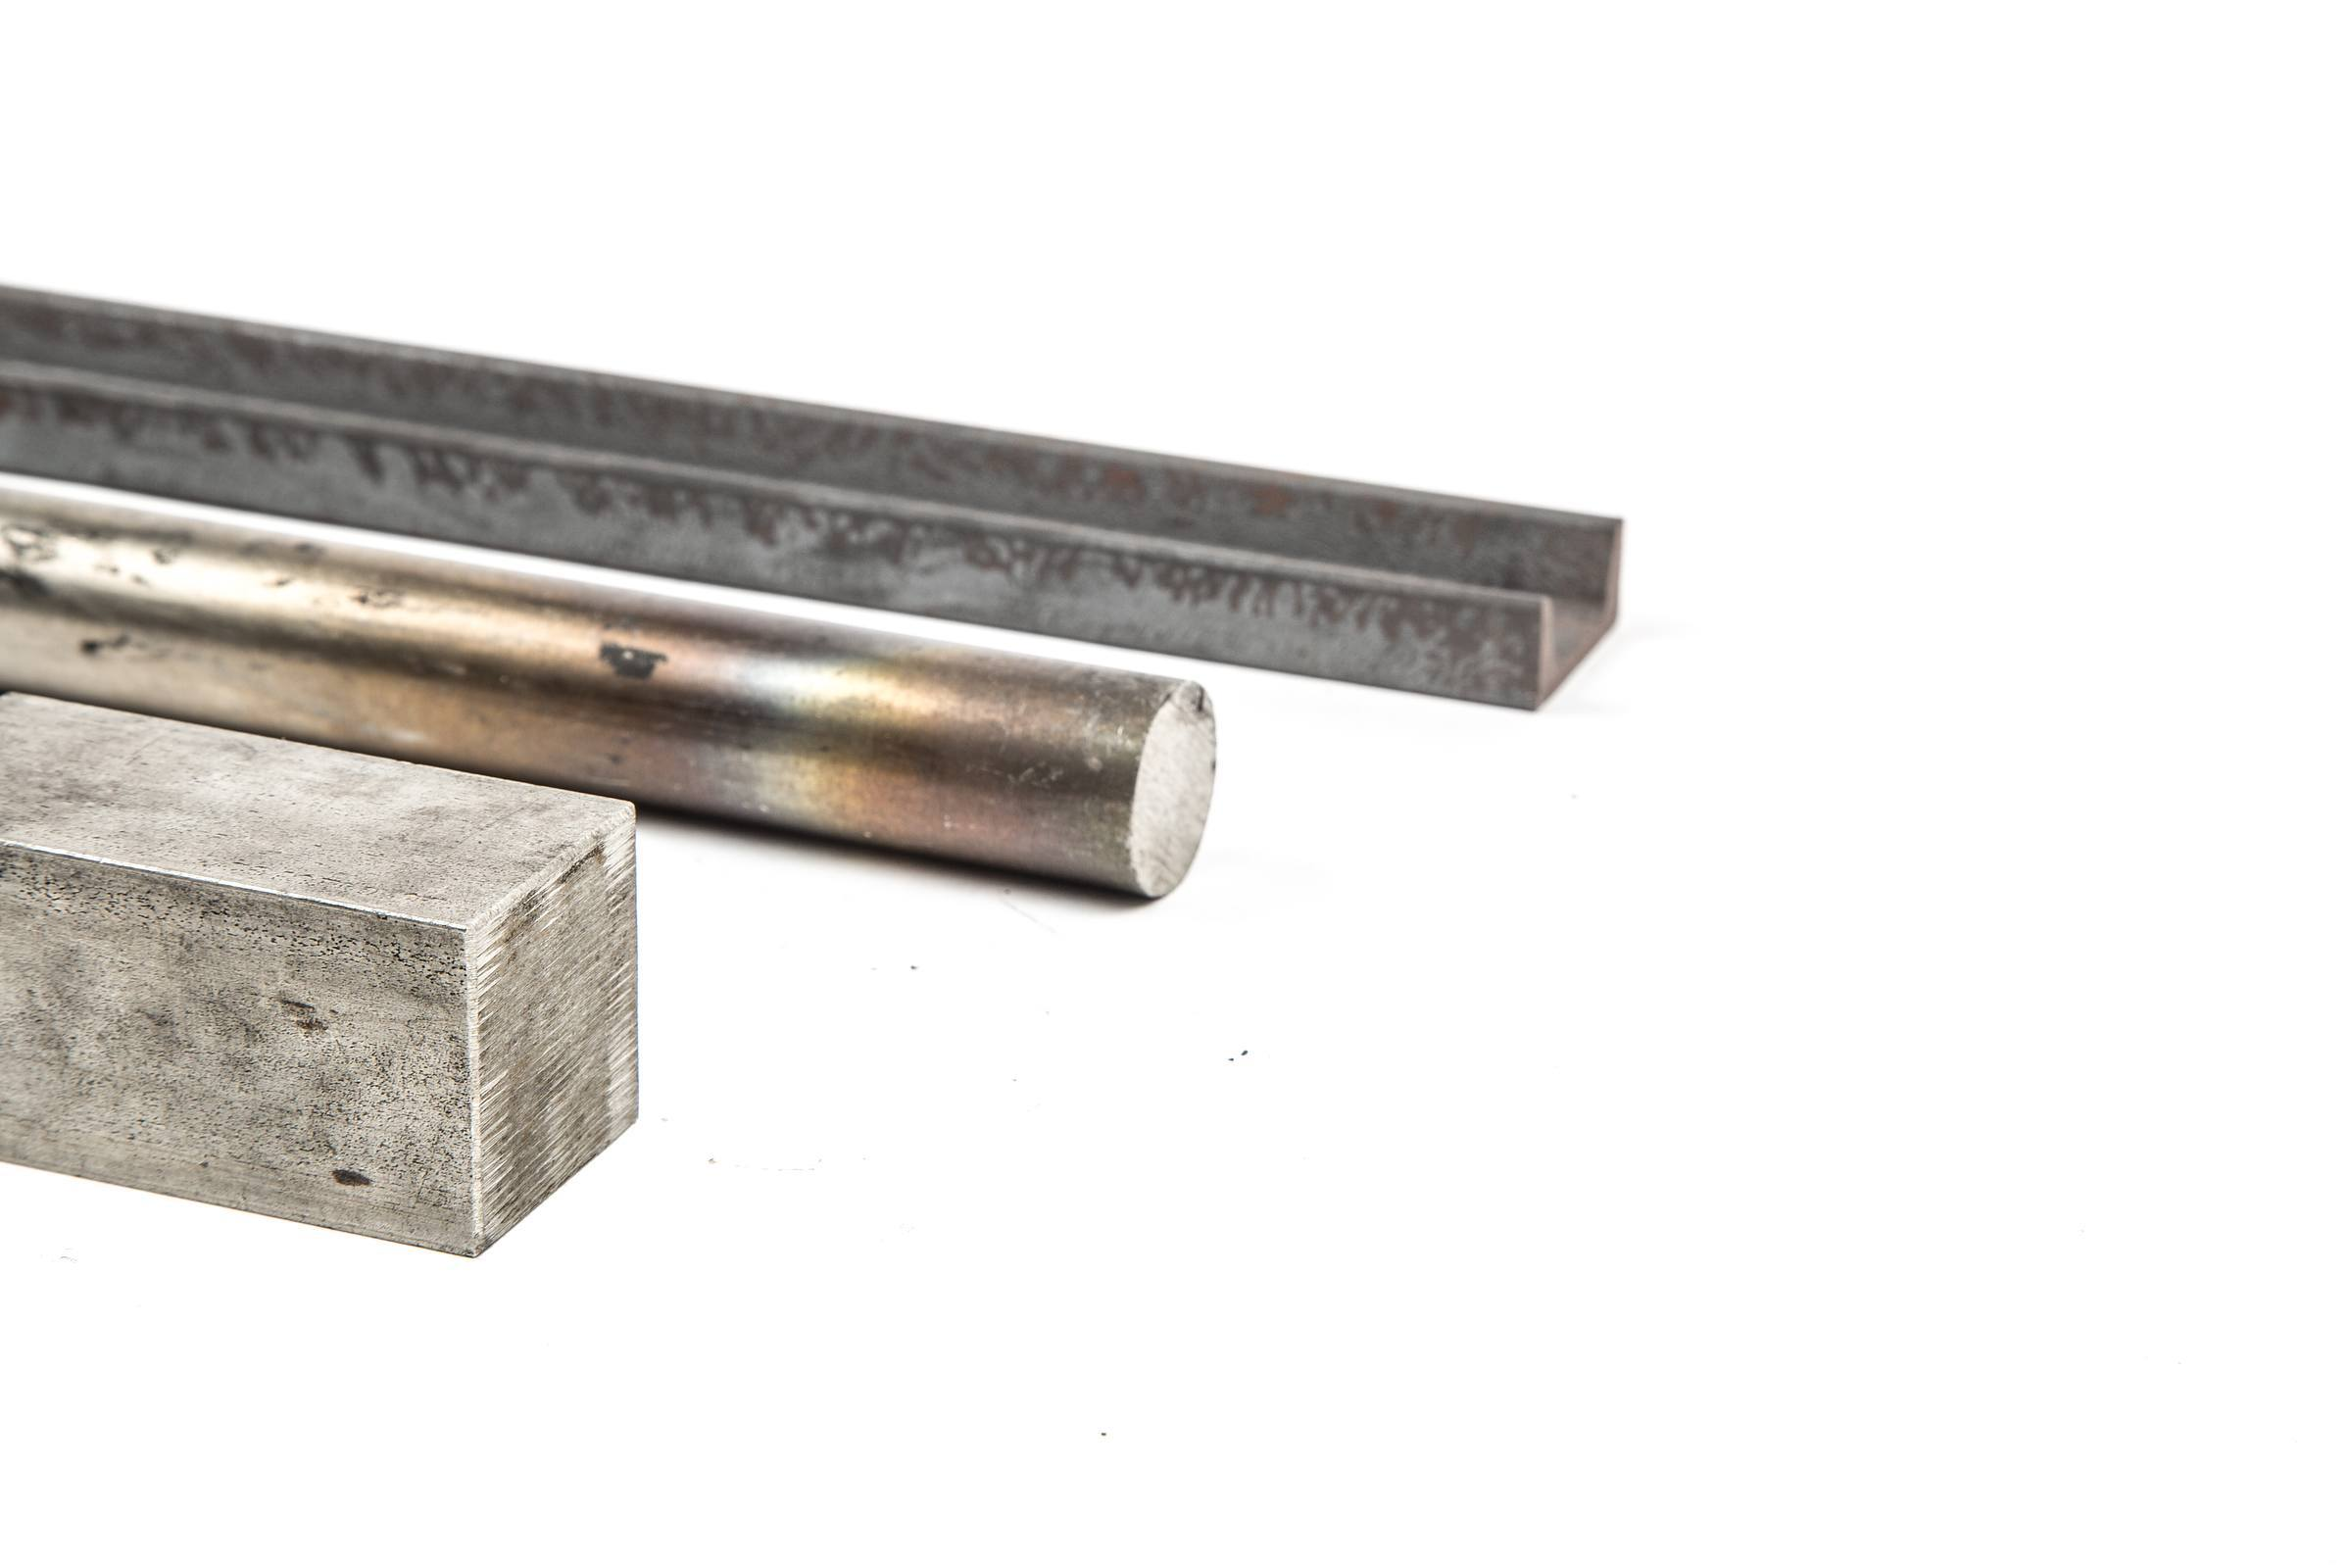 metal basics a beginner s intro to choosing the right material make